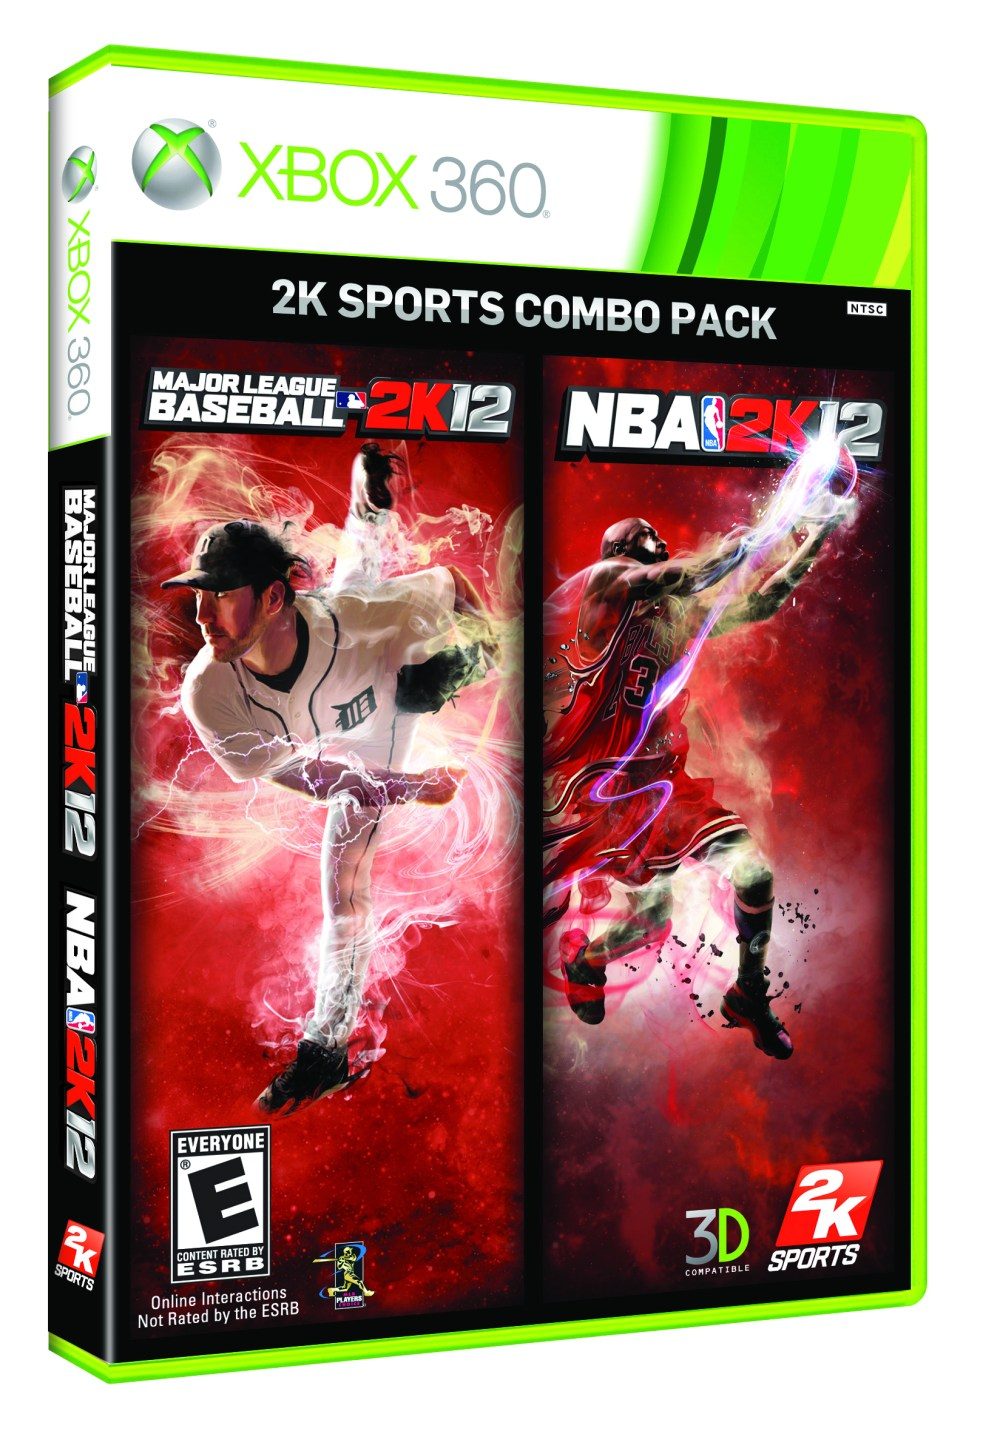 NBA-MLB-2K12_360_Bundle_FoB_3D LEFT